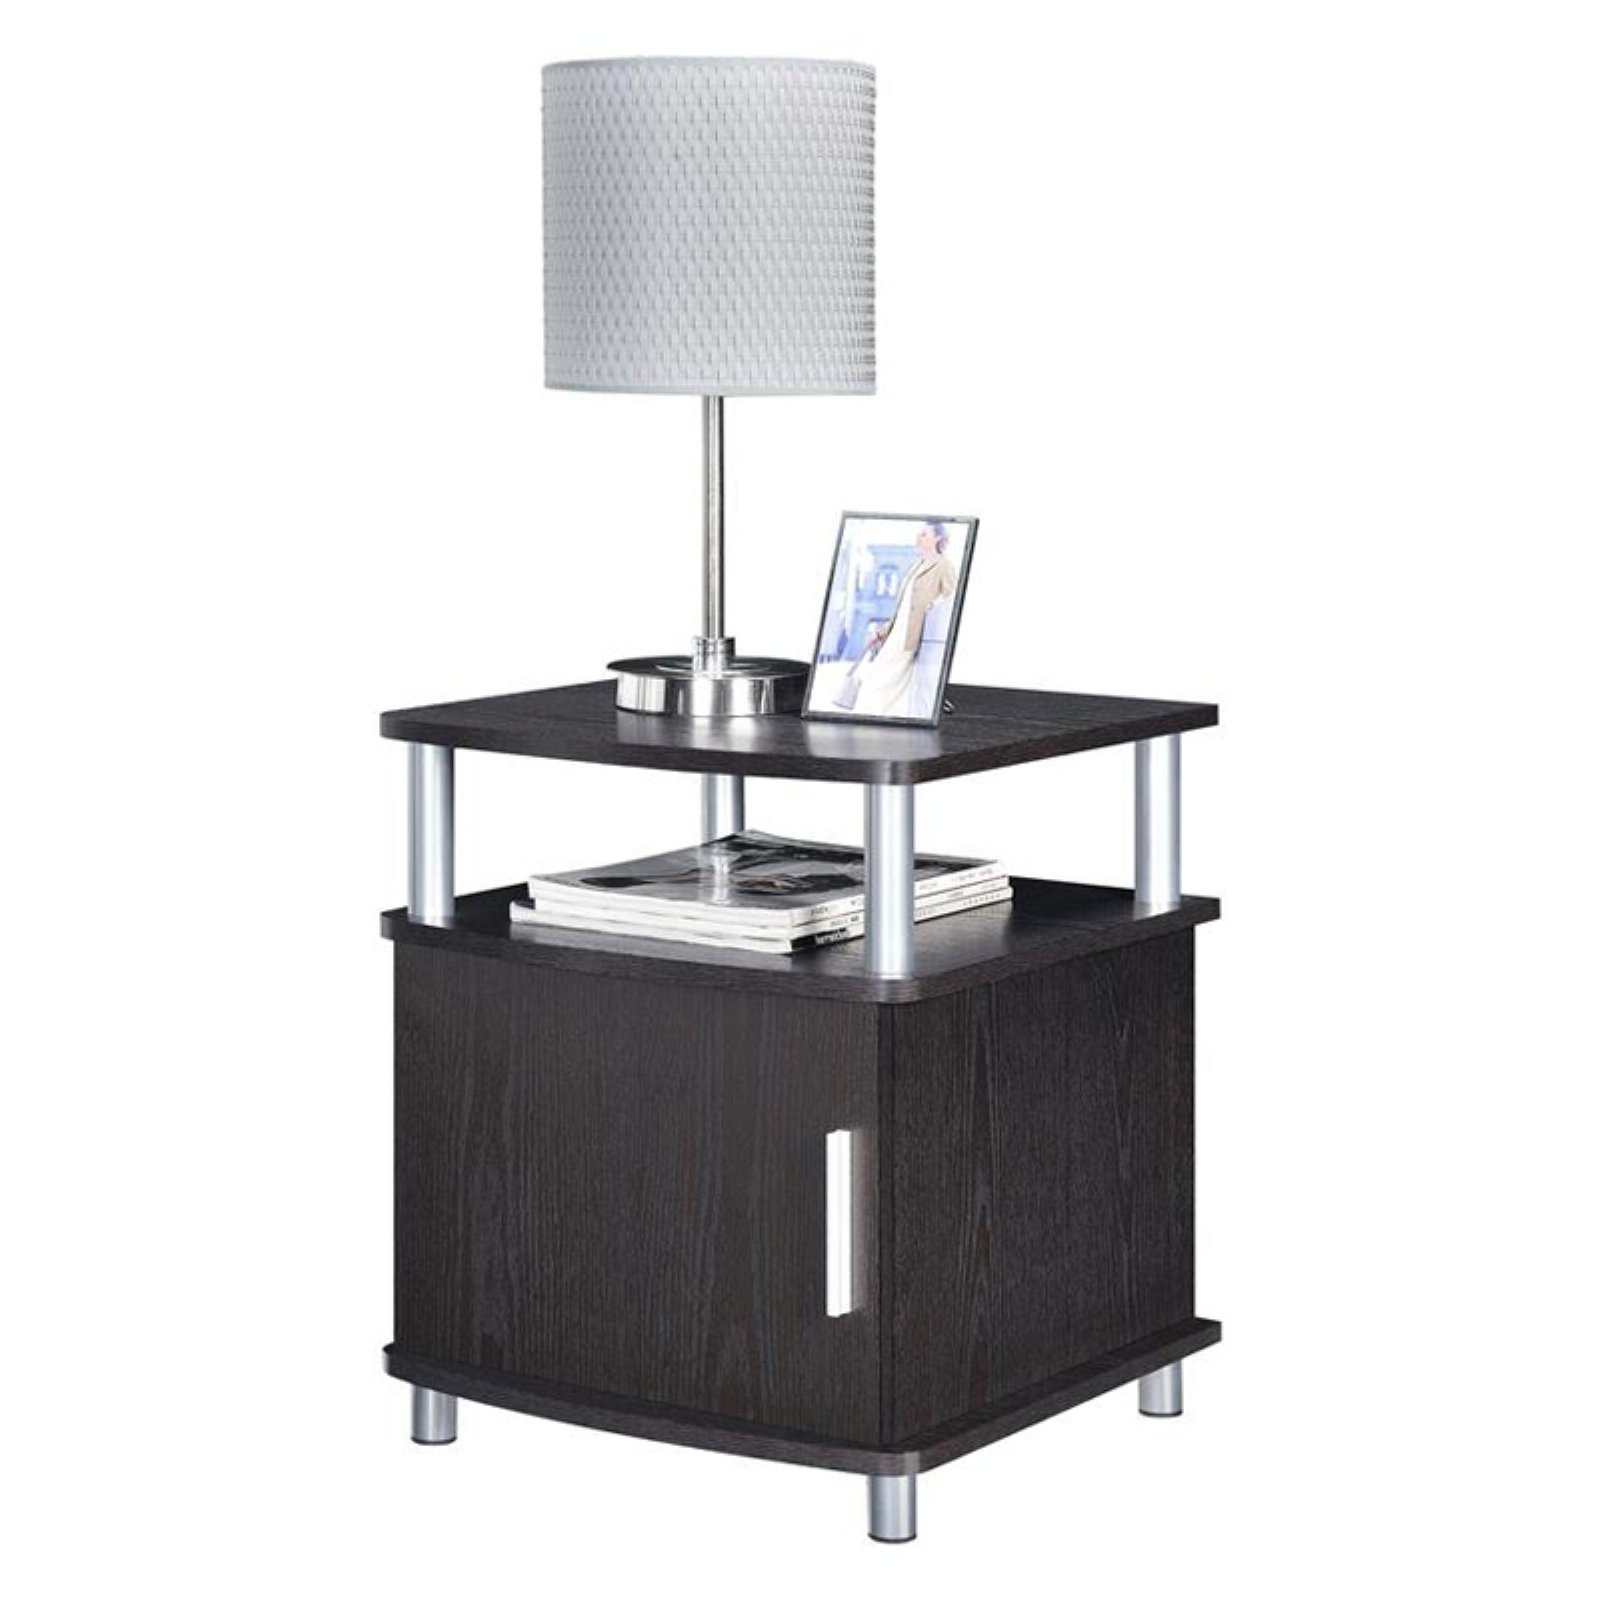 Ameriwood Home Carson End Table with Storage, Espresso Silver by Altra